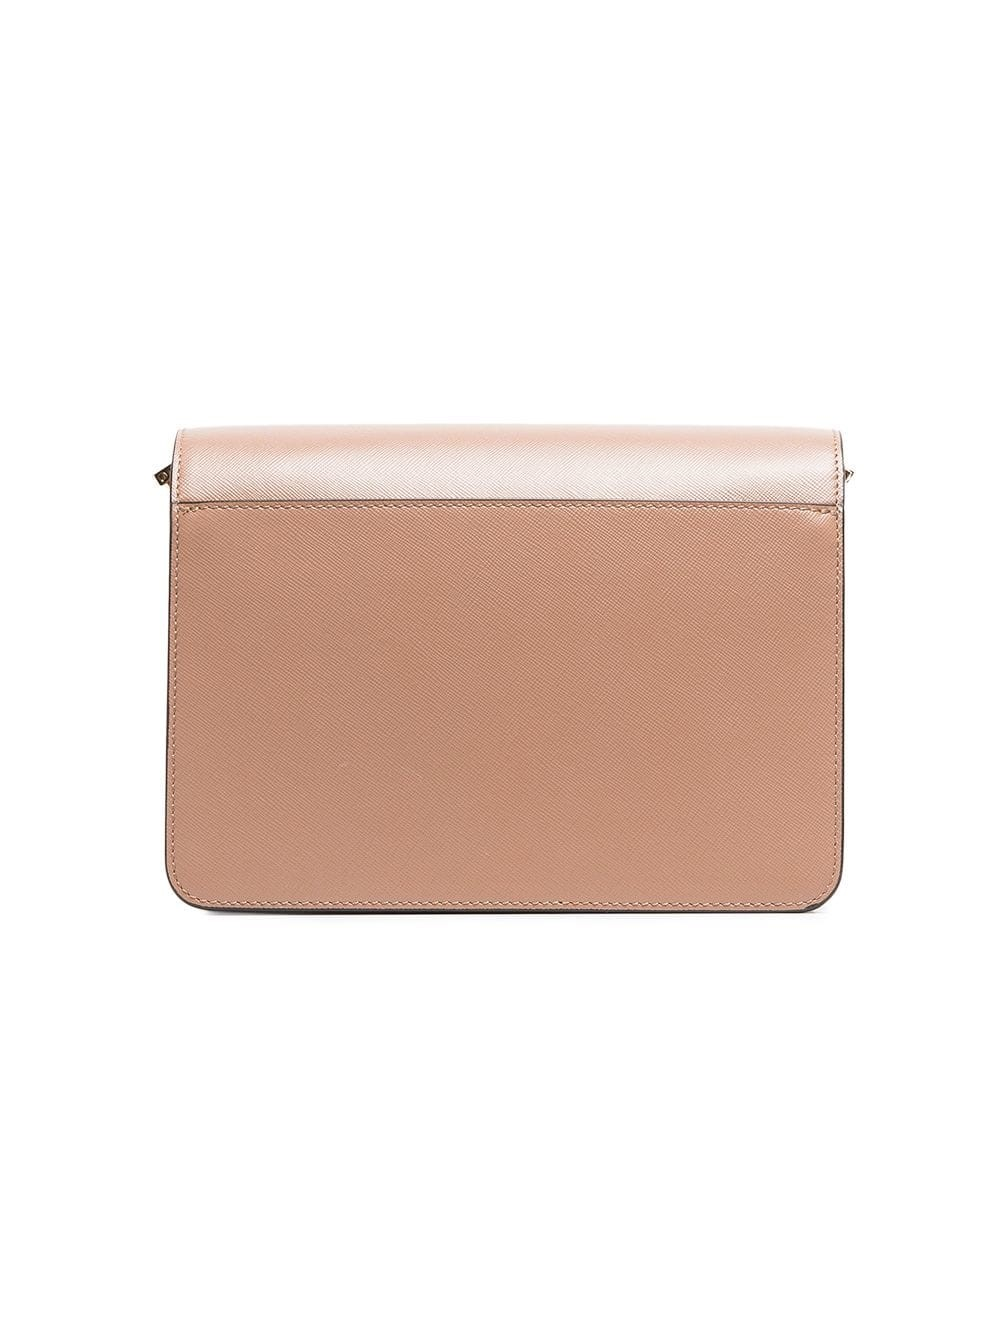 66b0ff036 marni TRUNK BAG available on montiboutique.com - 26367